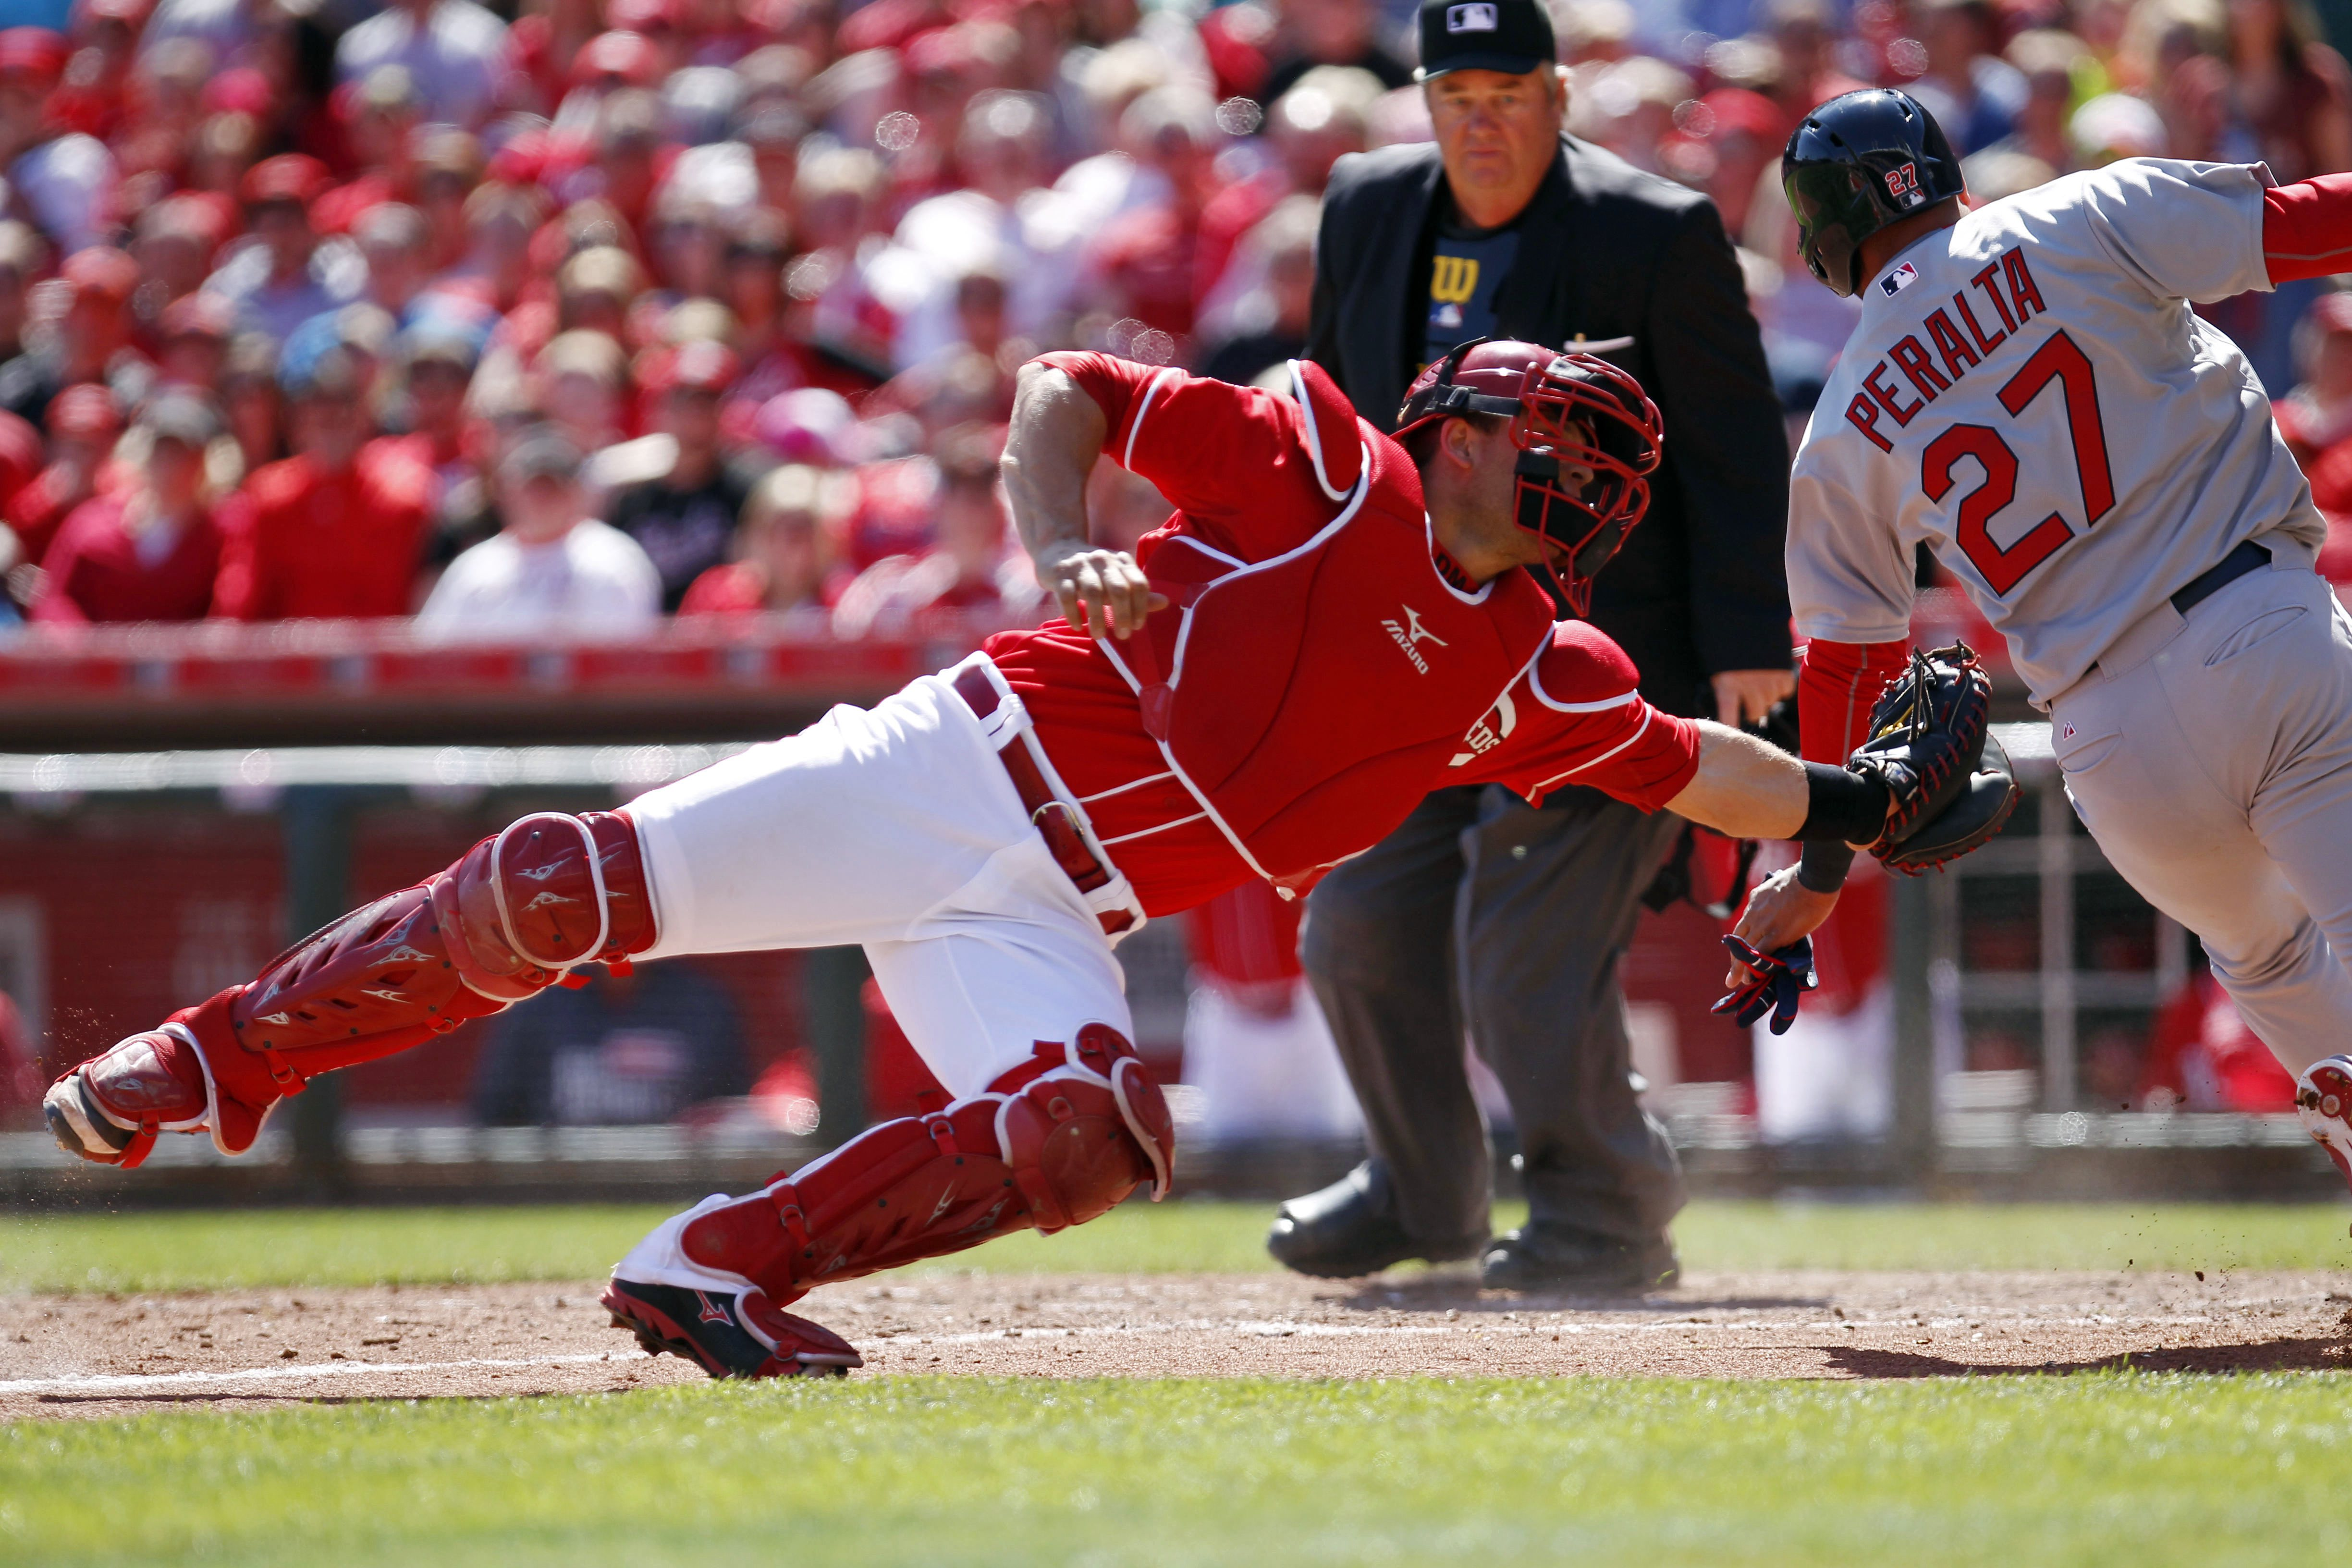 Apr 11, 2015; Cincinnati, OH, USA; St. Louis Cardinals shortstop Jhonny Peralta (27) scores during the ninth  inning against the Cincinnati Reds catcher Devin Mesoraco (39) at Great American Ball Park. The Cardinals won 4-1. Mandatory Credit: Frank Victores-USA TODAY Sports